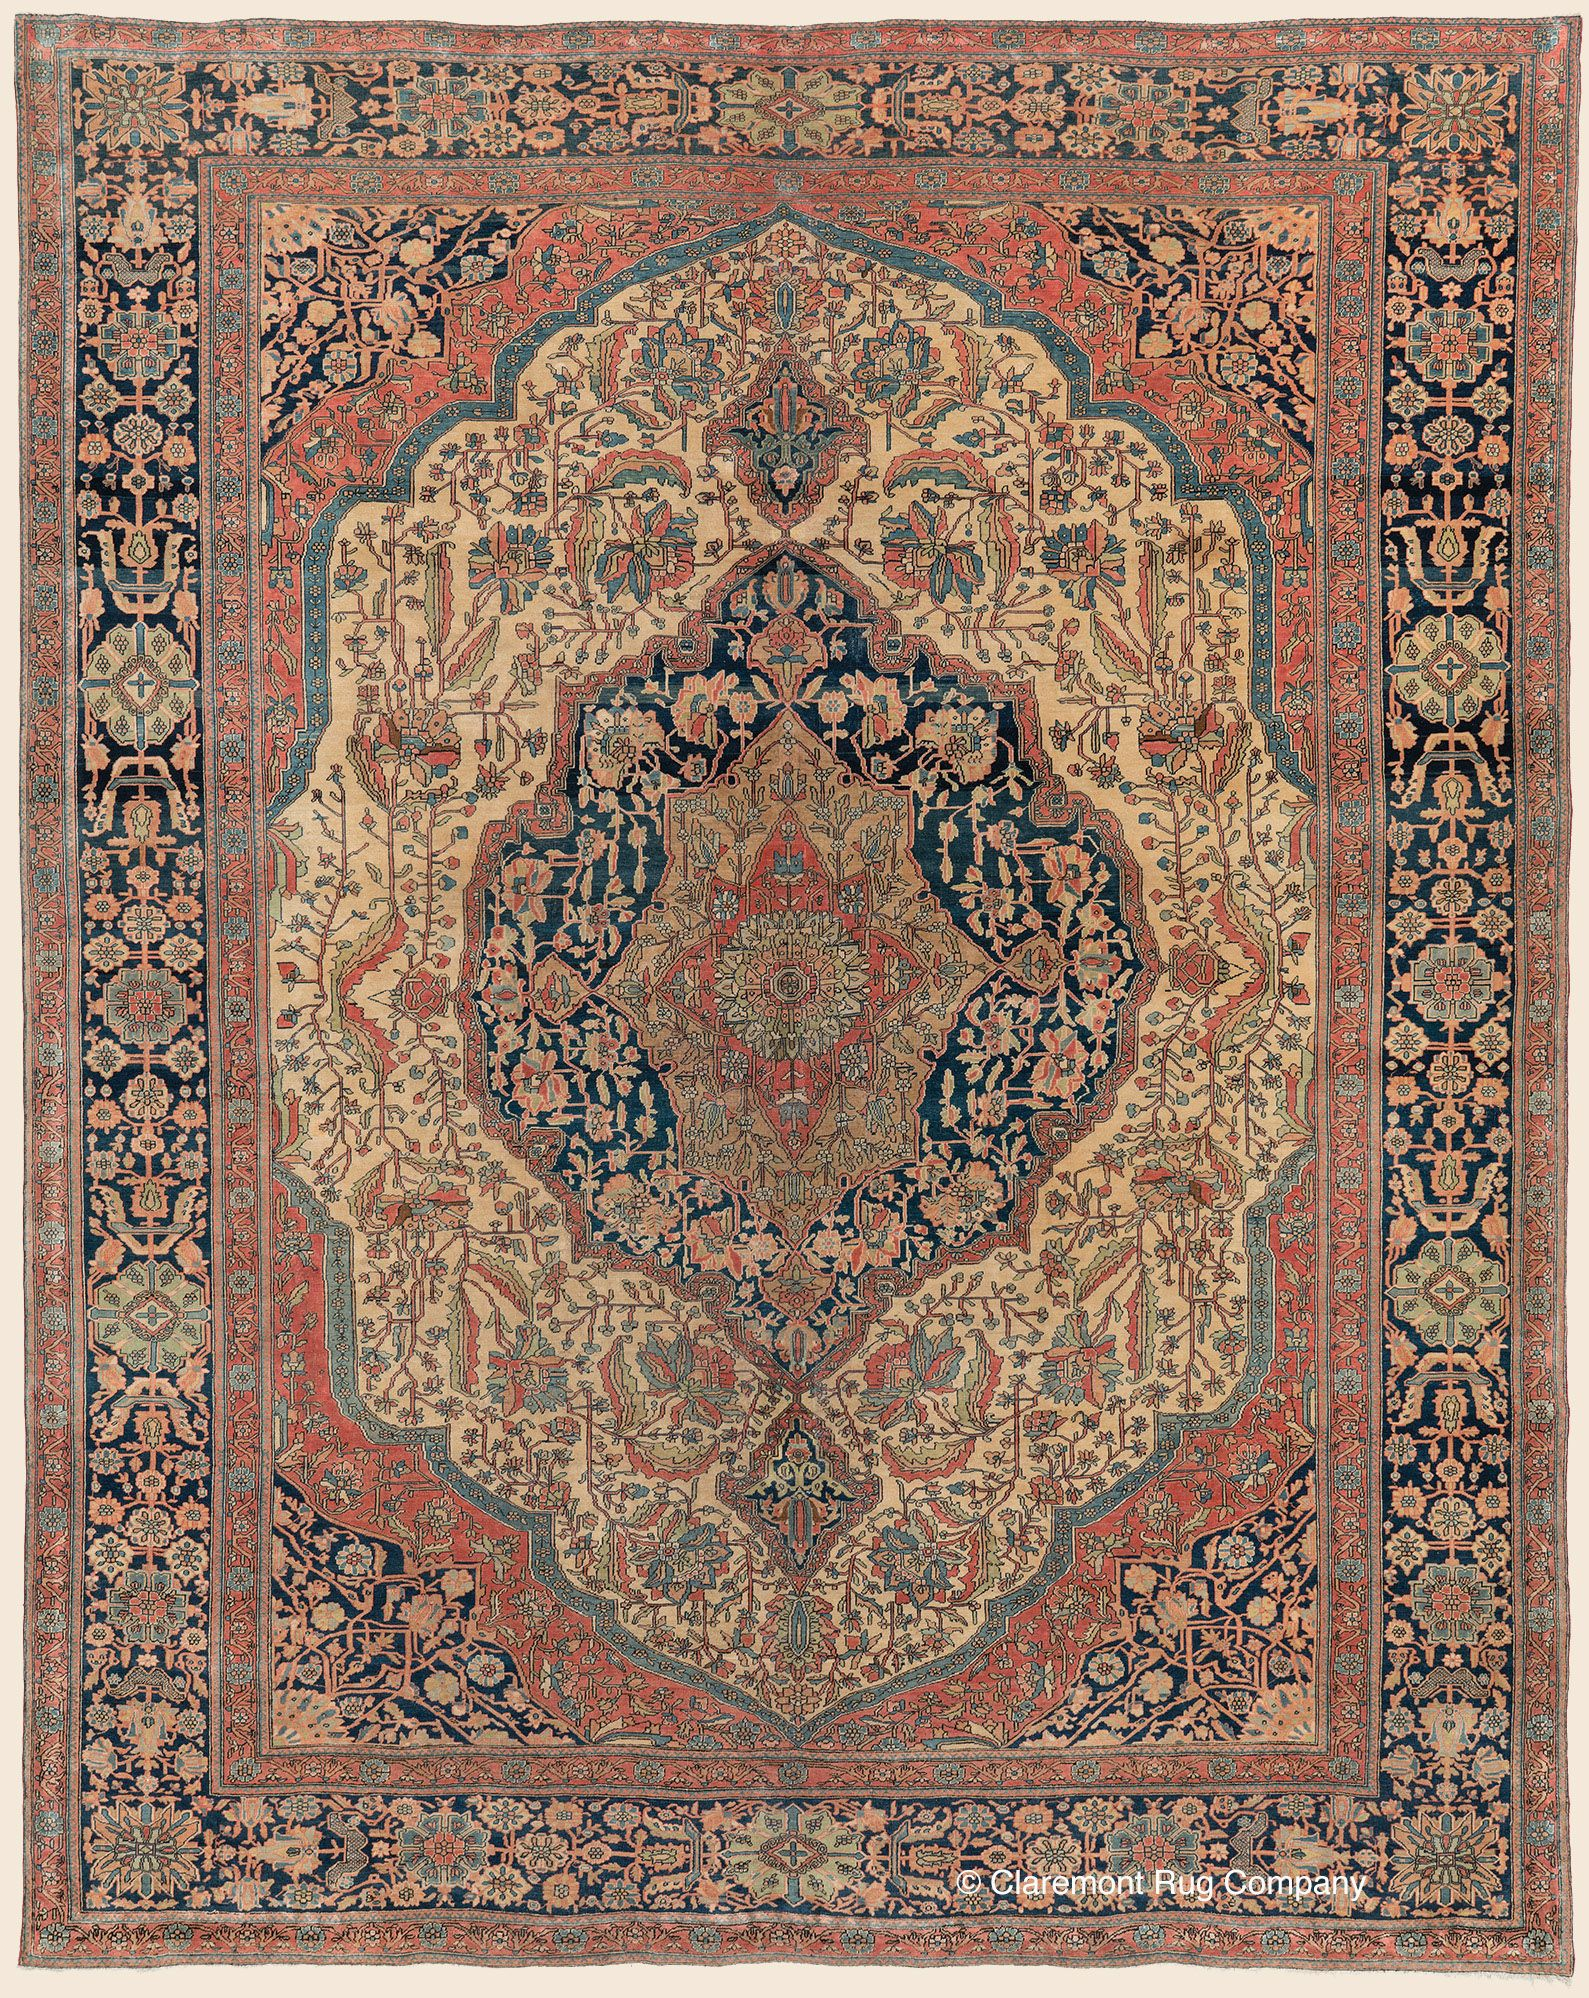 Claremont Rug Company S 2018 Year End Overview Persian Rug Designs Antique Rugs Rugs On Carpet